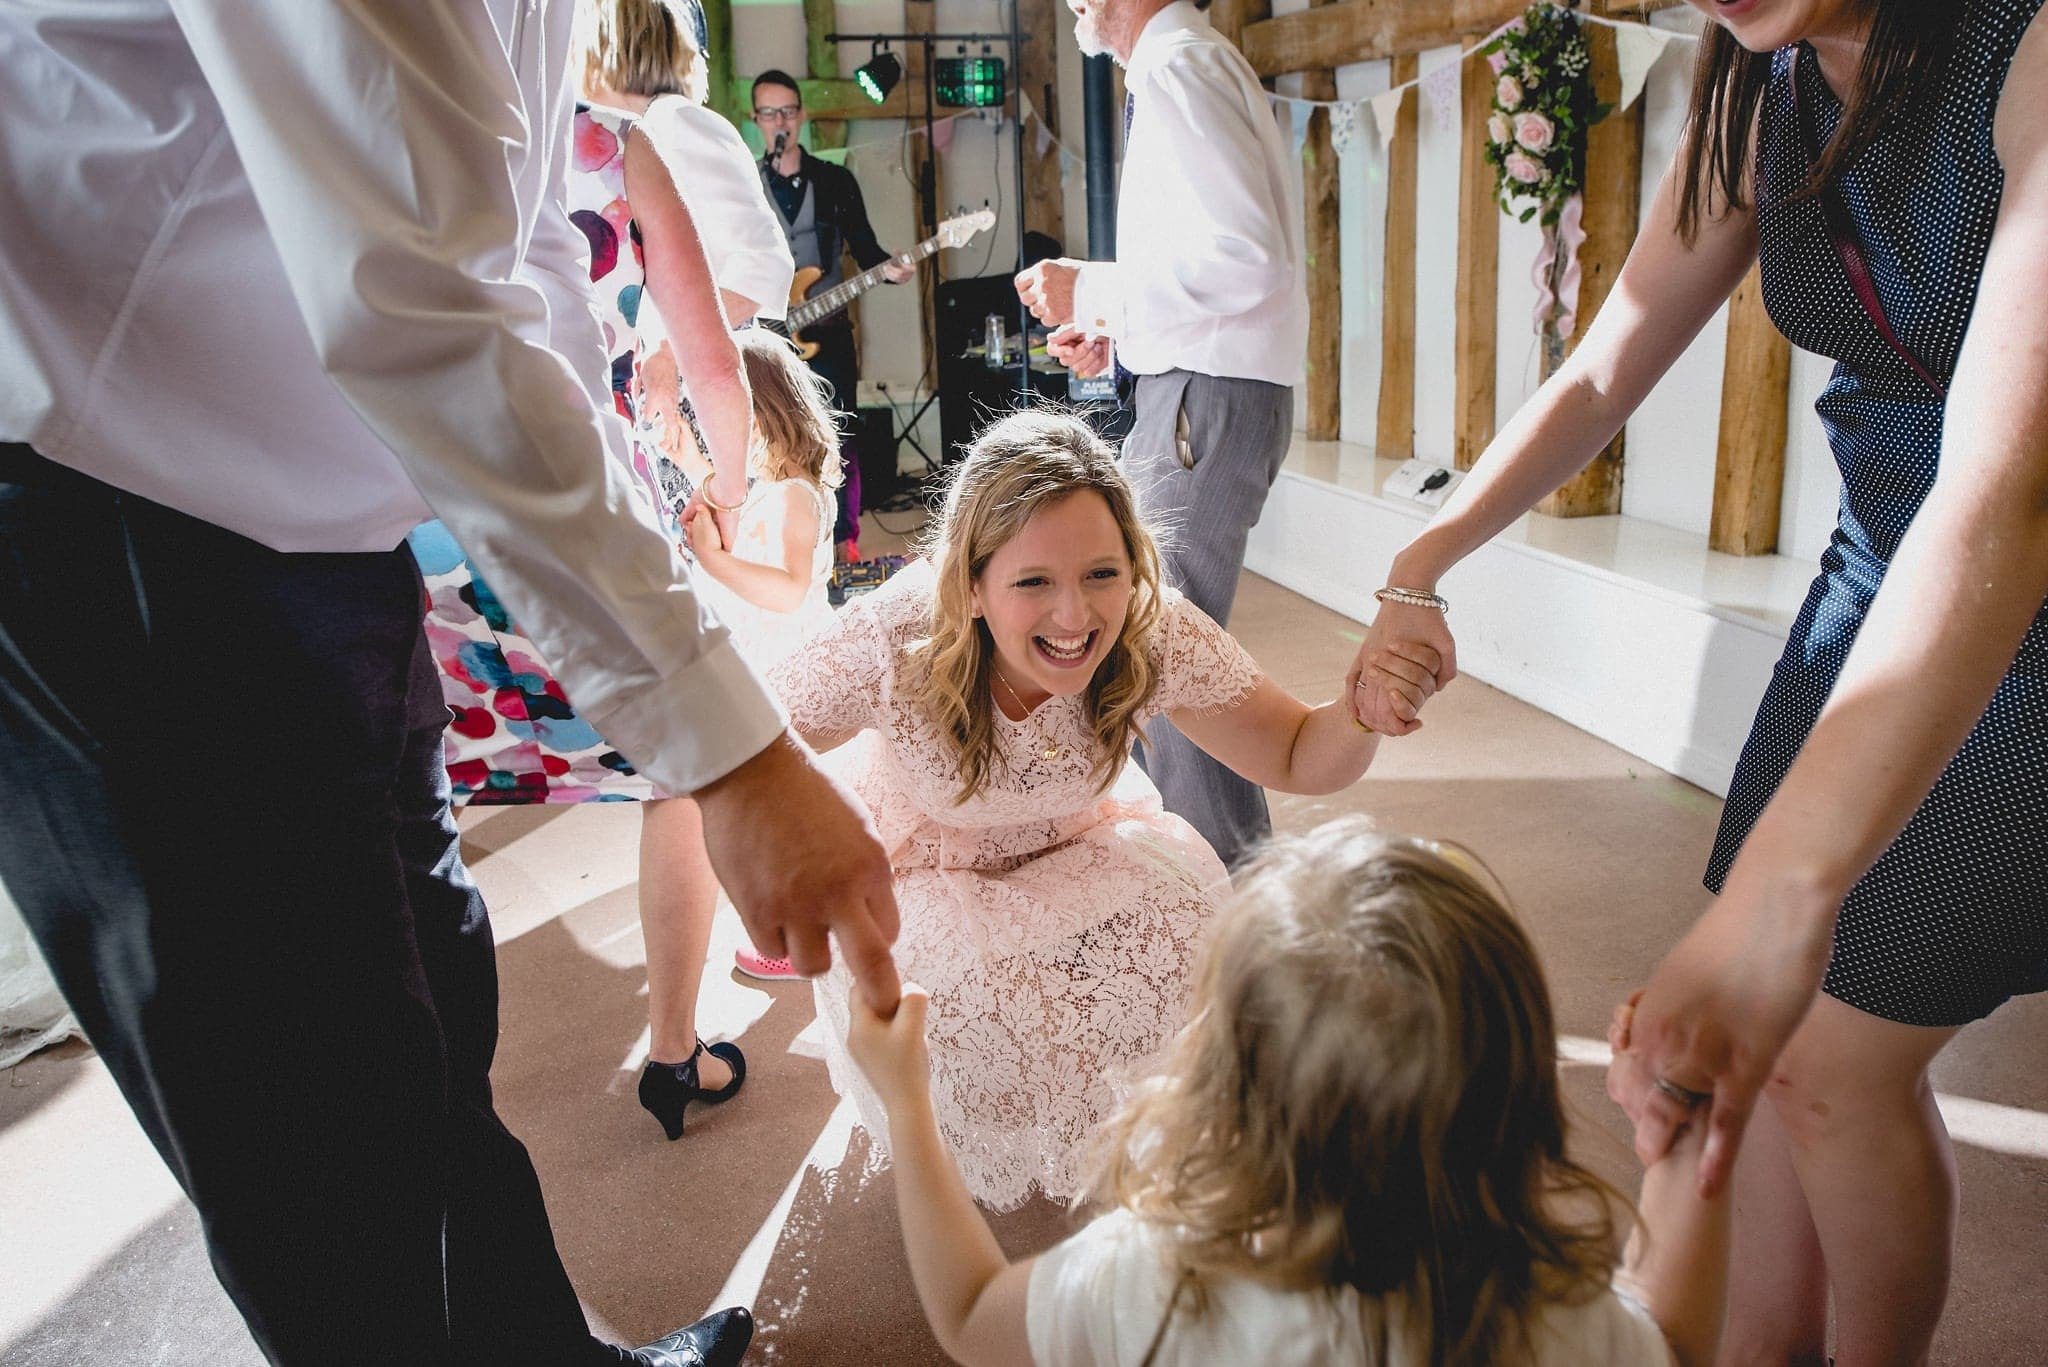 Bridesmaid kneels to dance with flower girl